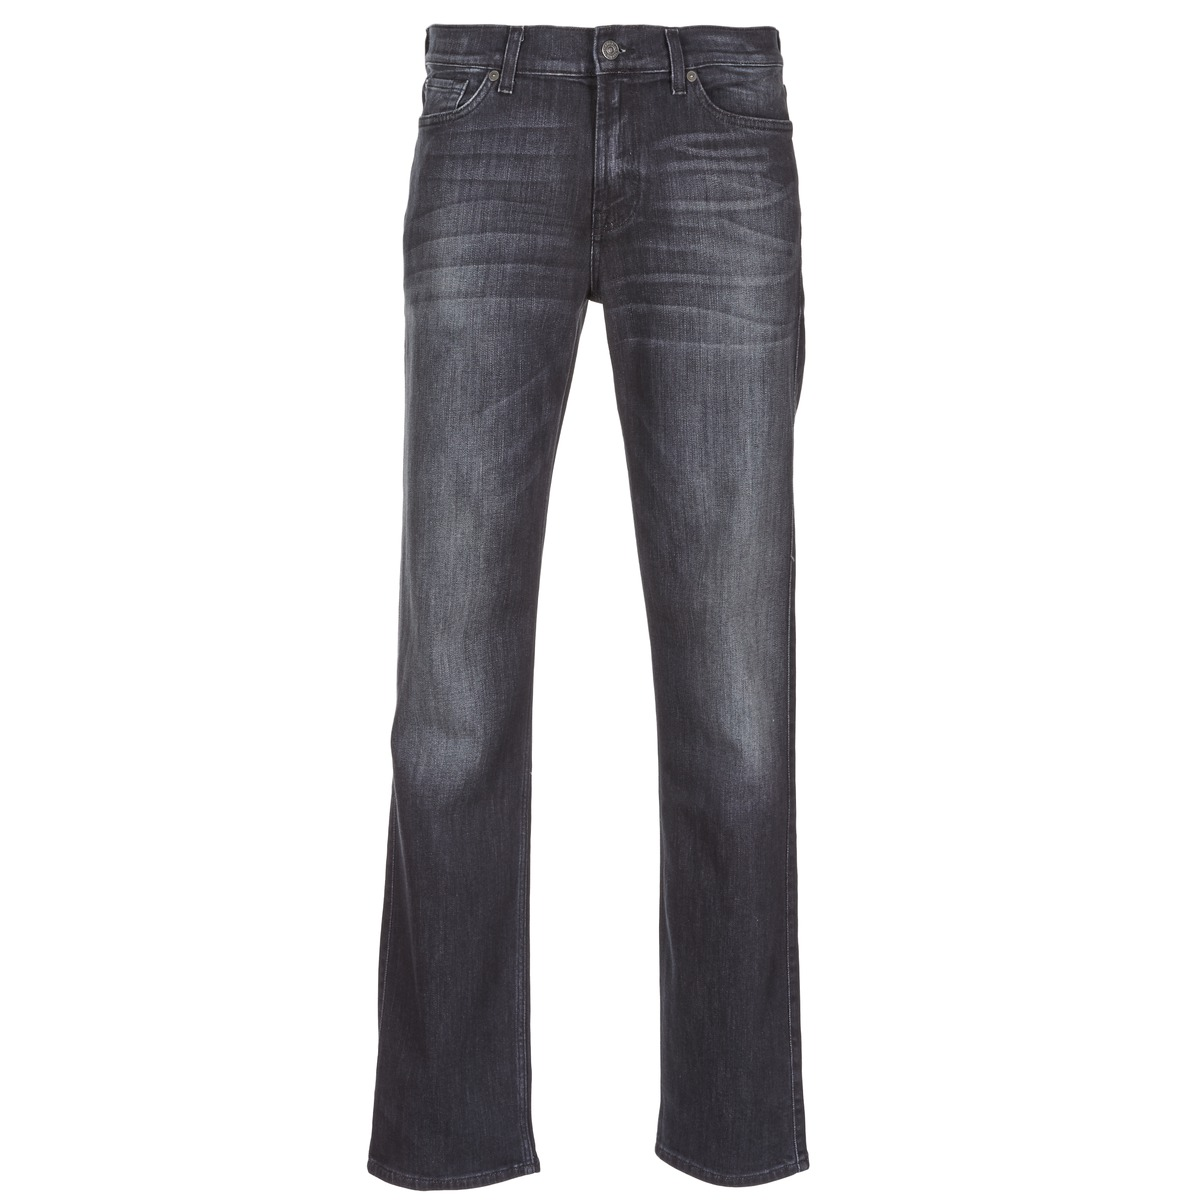 7 for all mankind  slimmy luxe performance  men's jeans in black